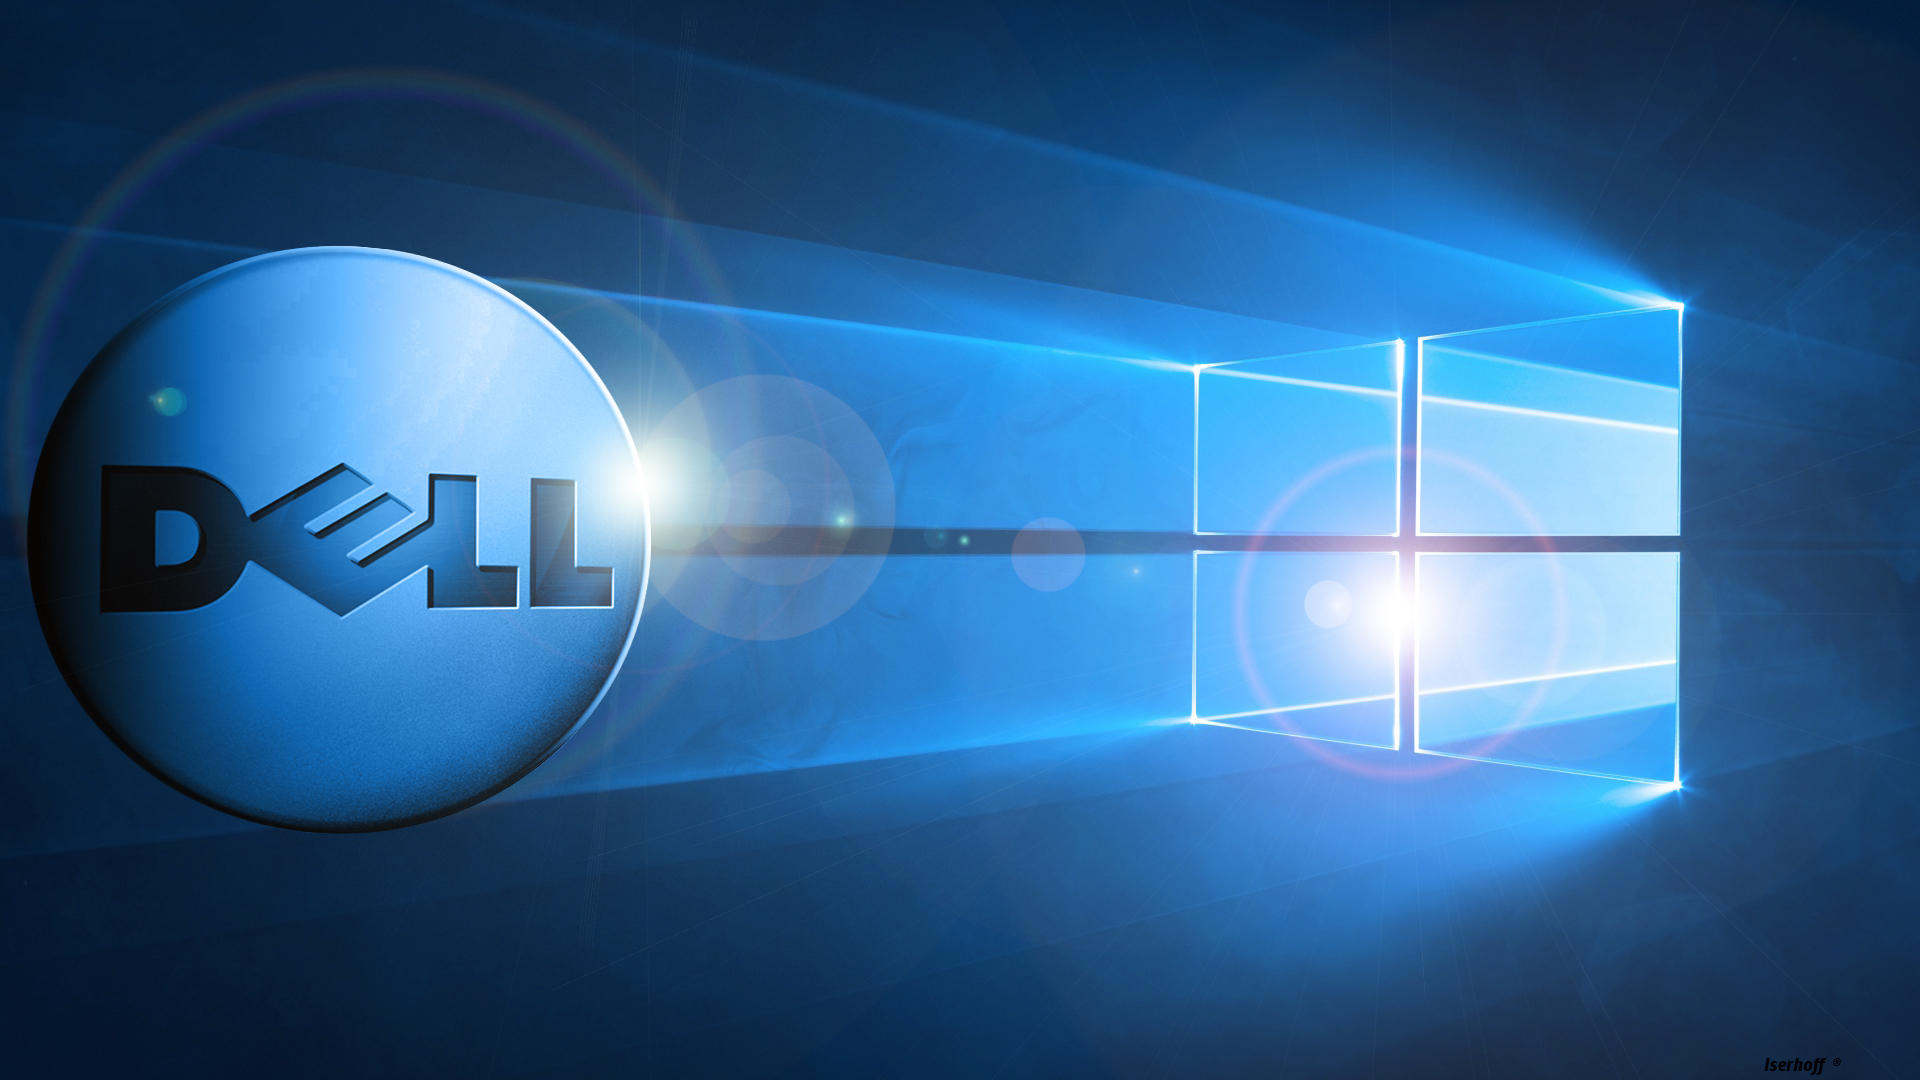 Dell Wallpaper: Dell Wallpaper Windows 10 By IzErHoFF On DeviantArt